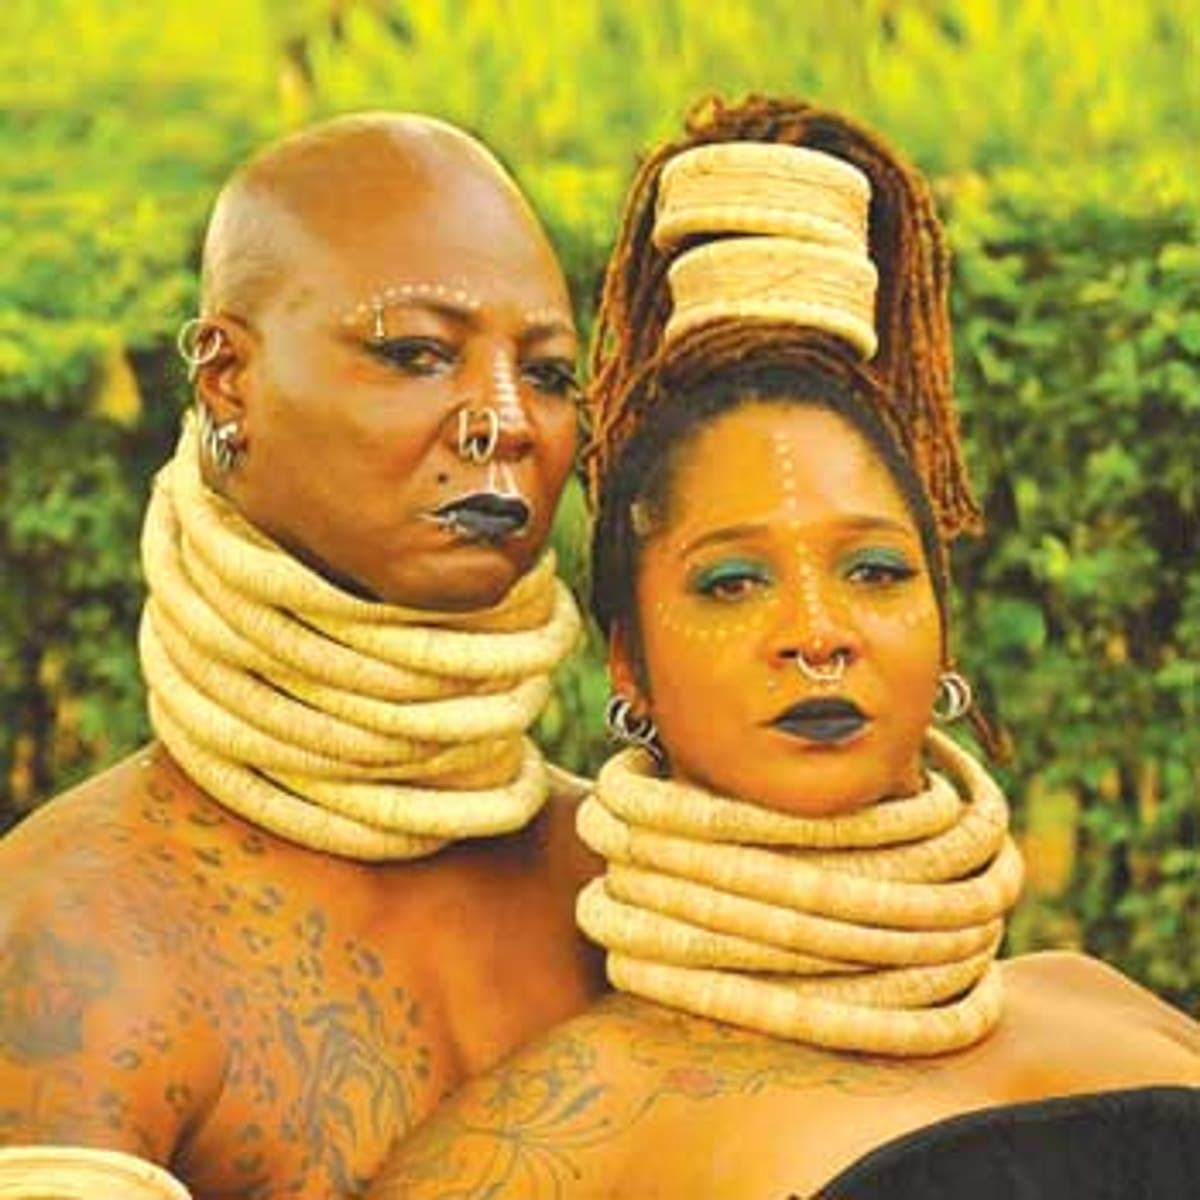 Charly Boy long-lasting marriage